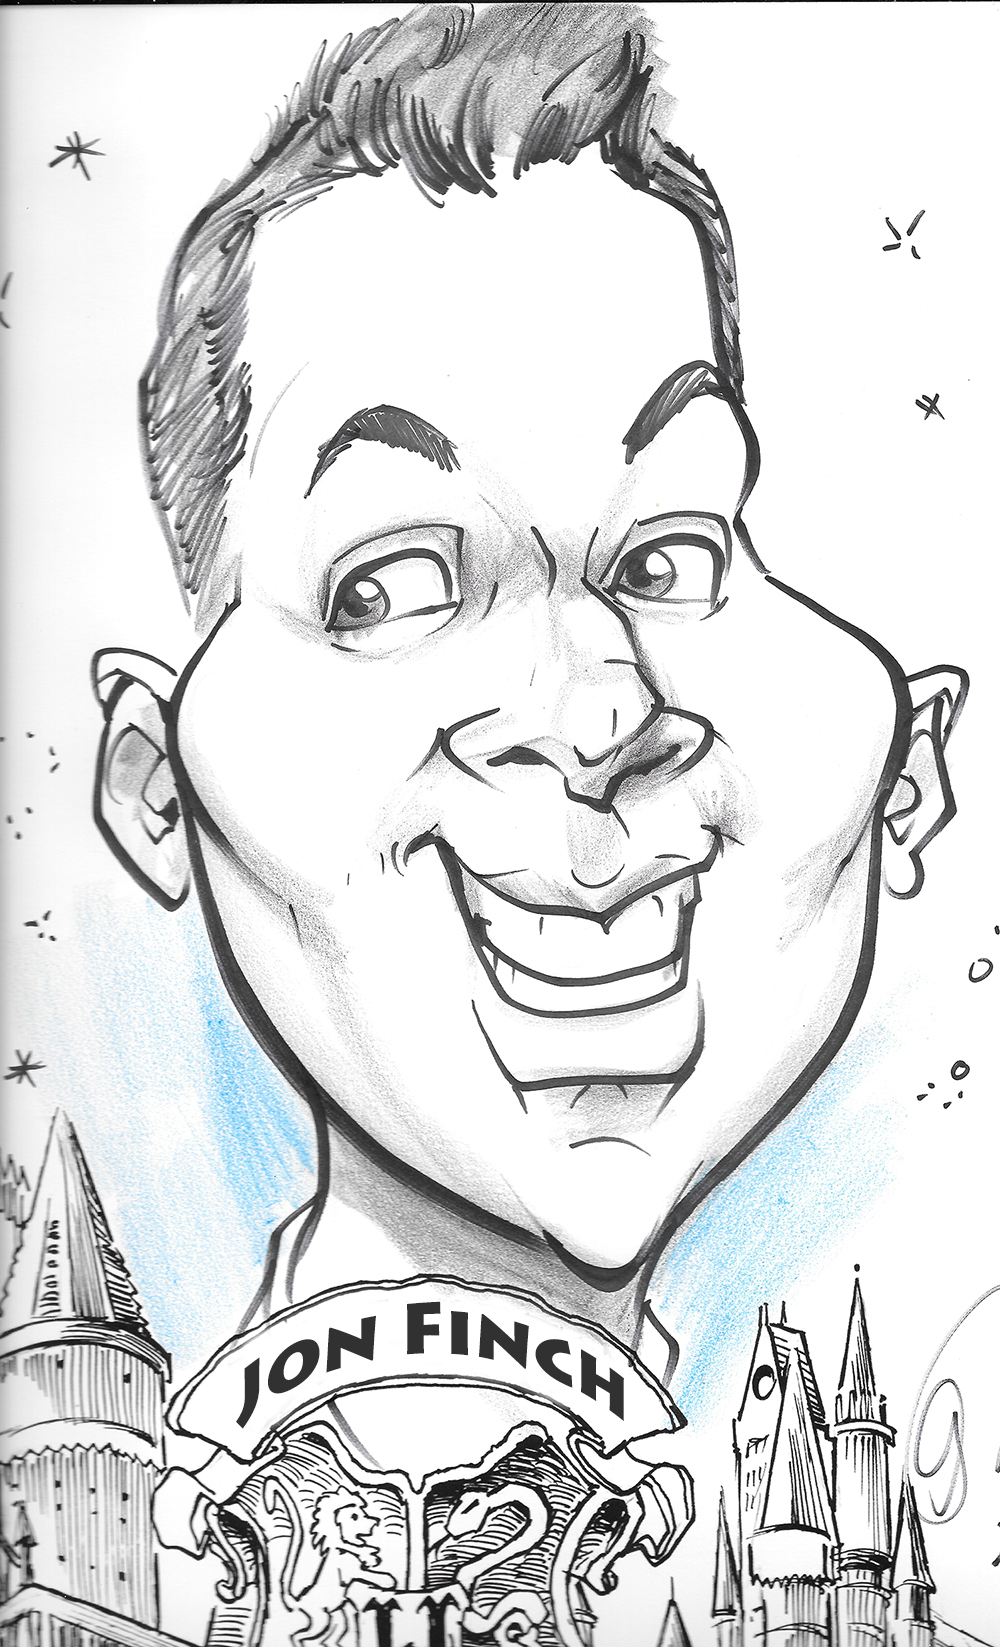 jon finch caricature.jpg